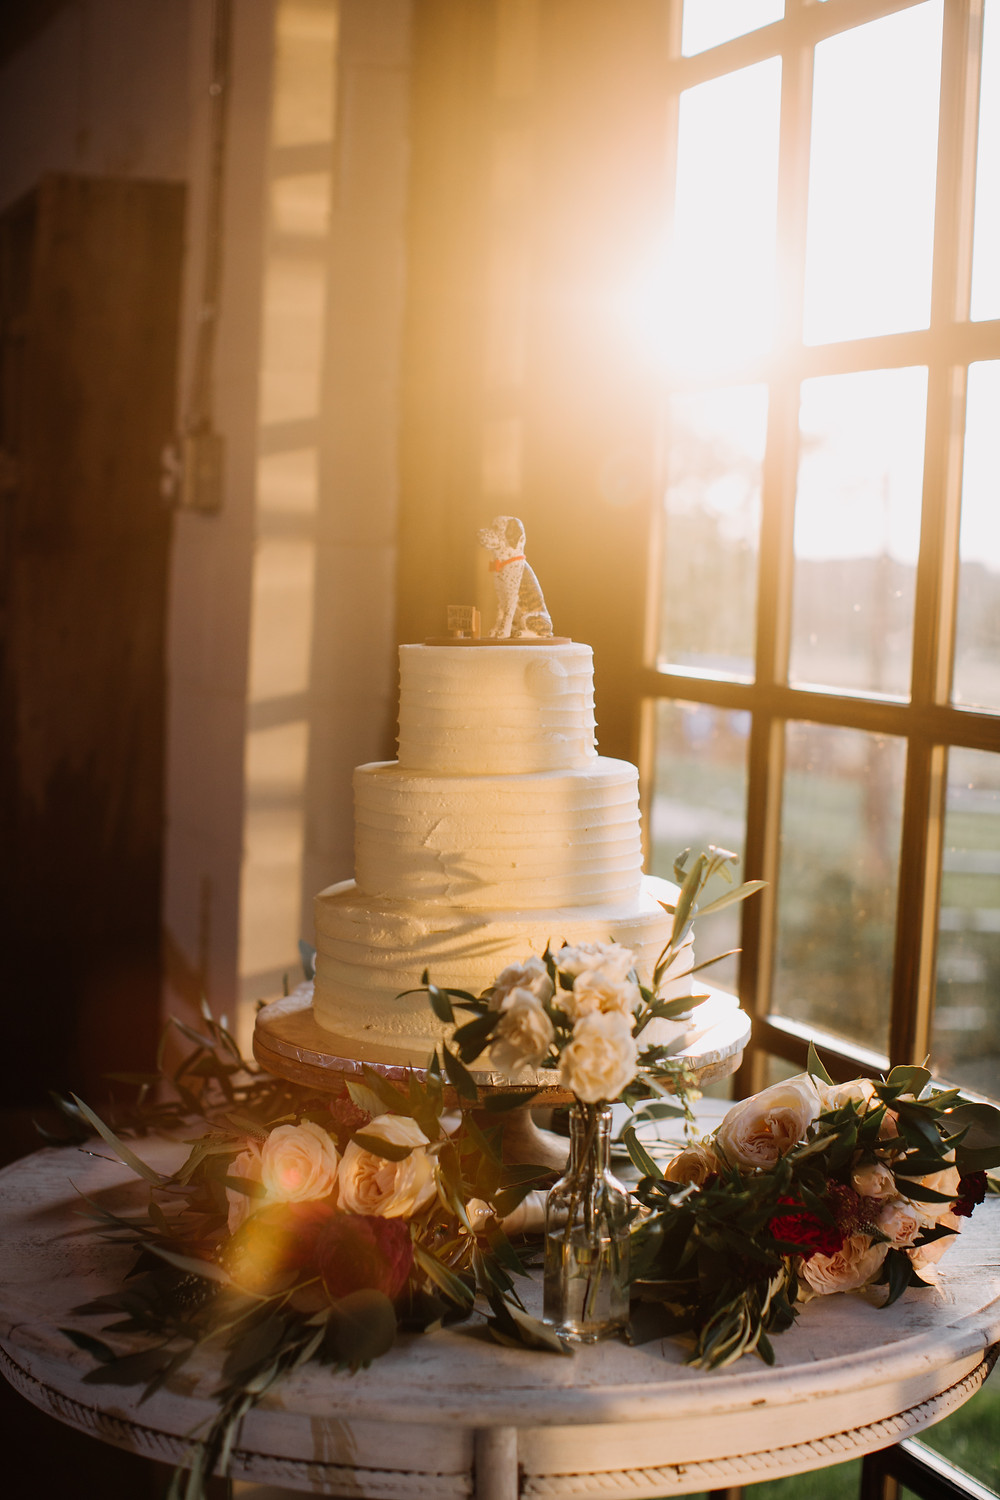 wedding cake decorated with flowers on table by a sunlight window